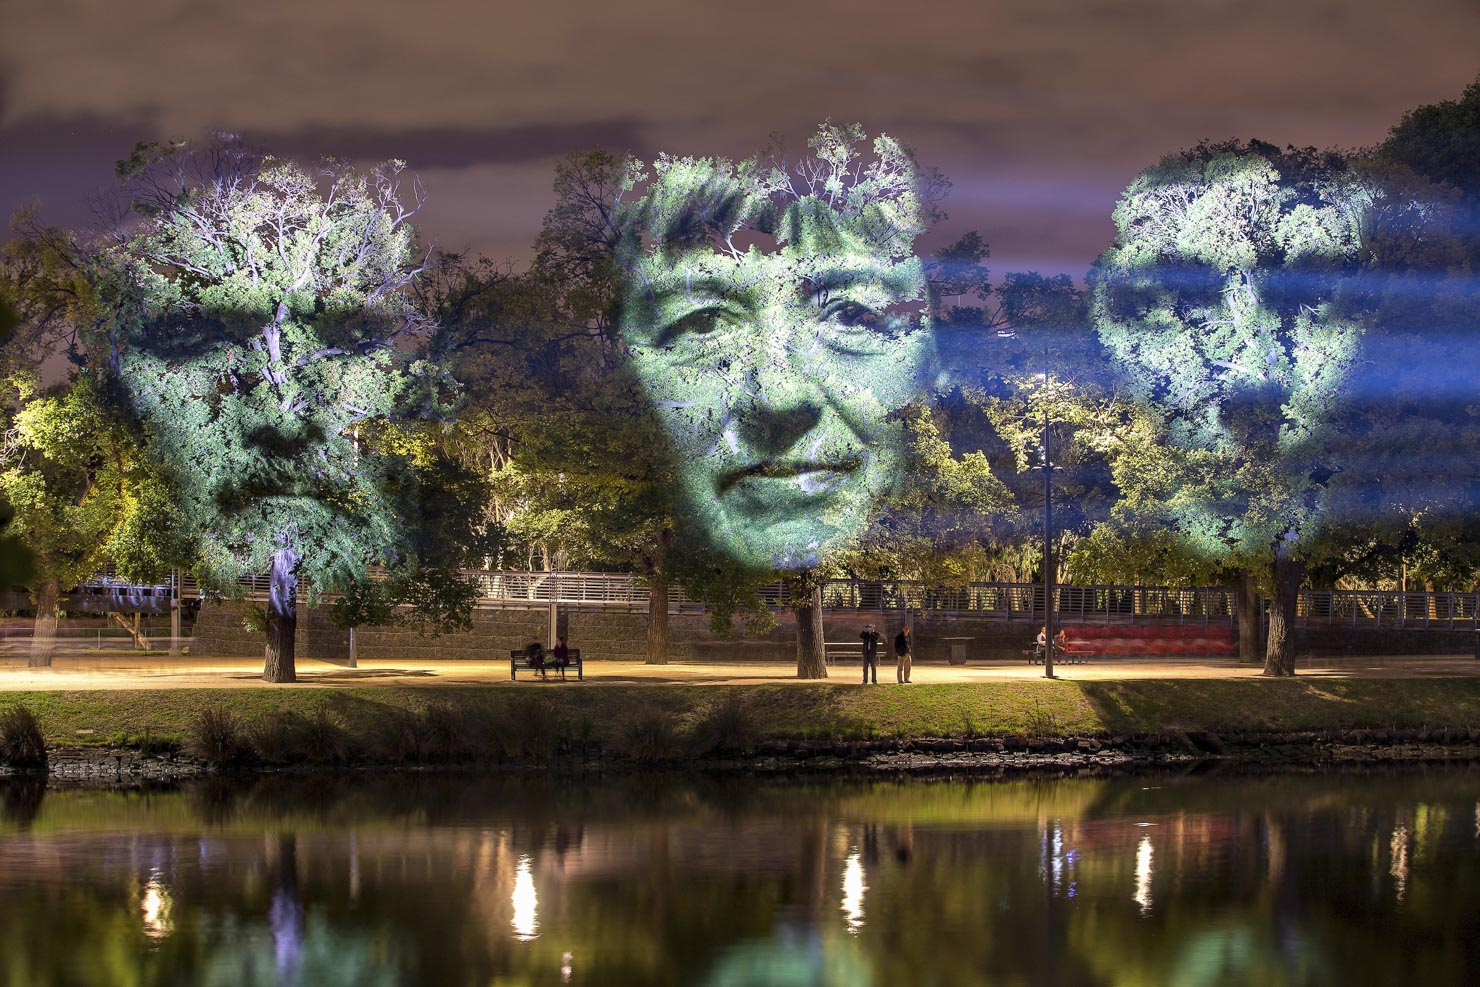 Projections of faces on park trees at a night time event